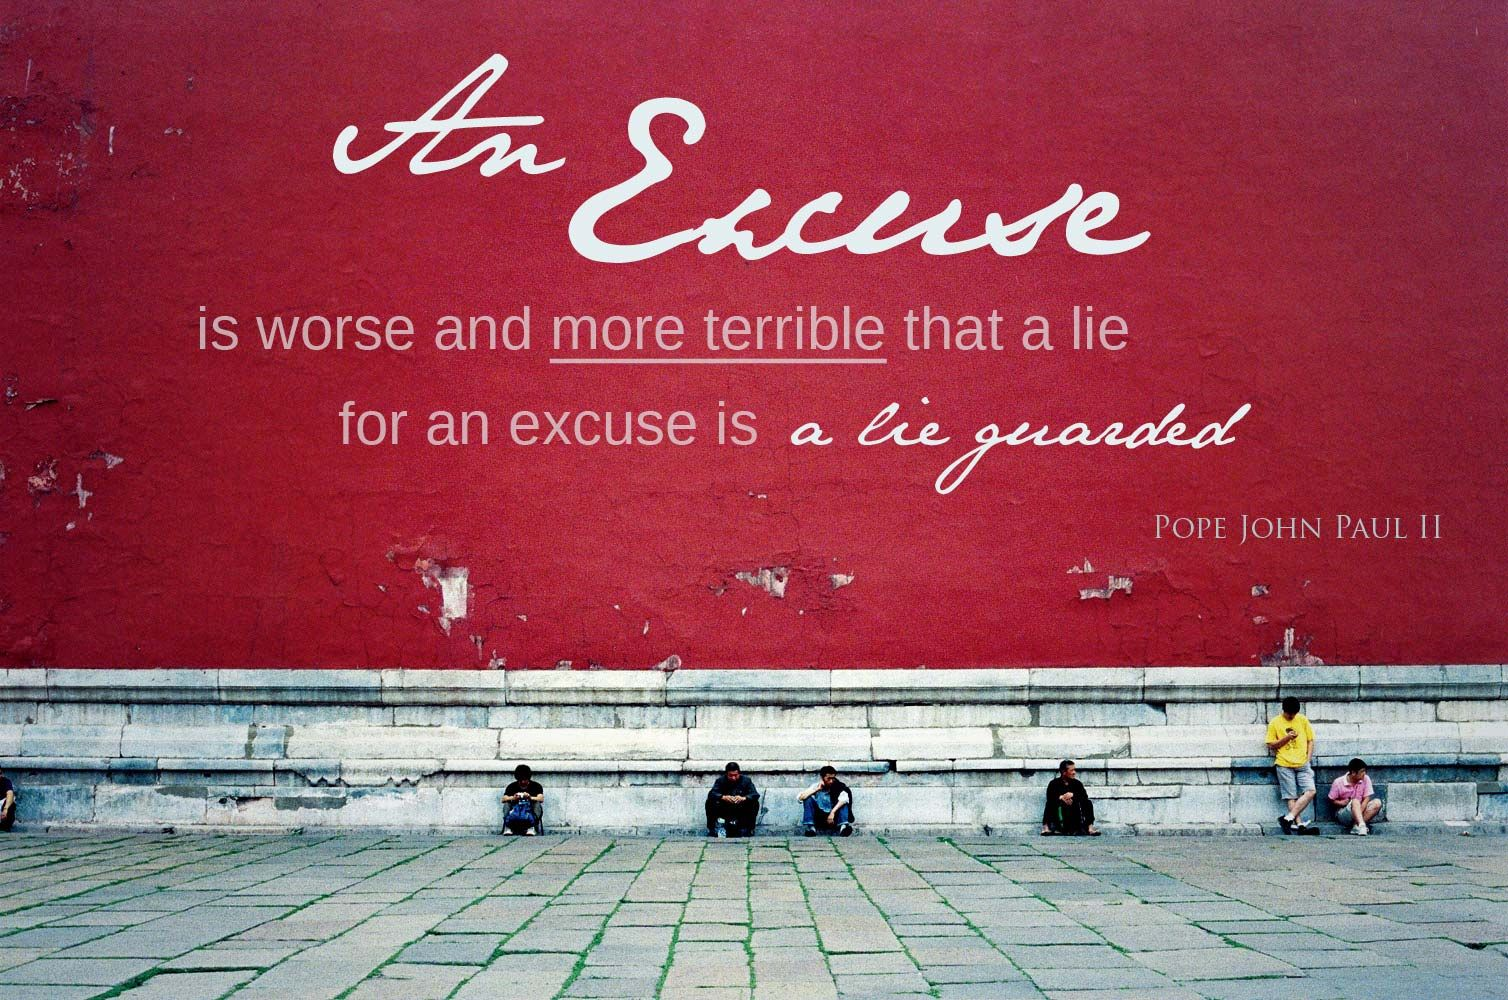 An excuse is worse and more terrible than a lie for an excuse is a lie guarded. -- JPII